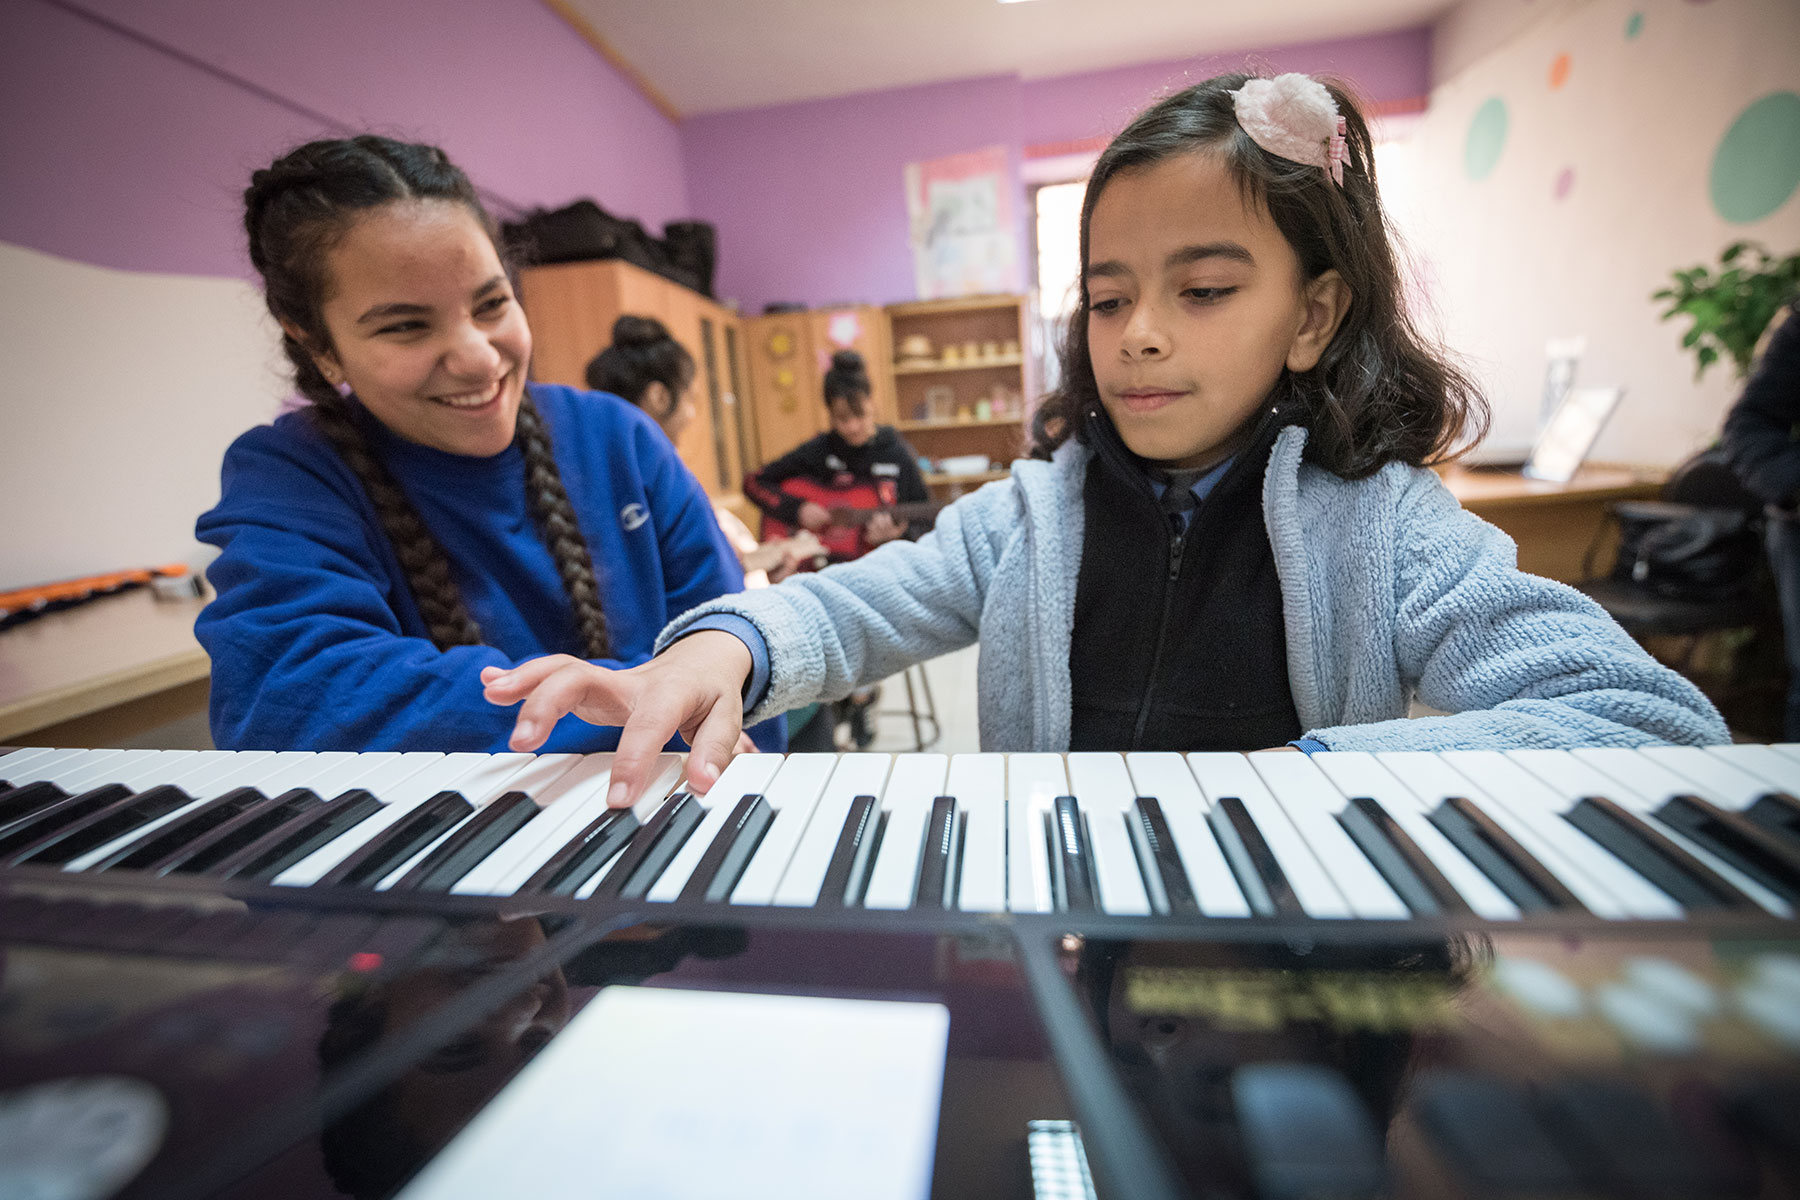 15-year-old Rena Almaharmeh (left) receives piano instructions from ten-year-old Saja (right) in the Talent Room at Rufaida Al Aslamieh Primary Mixed School.